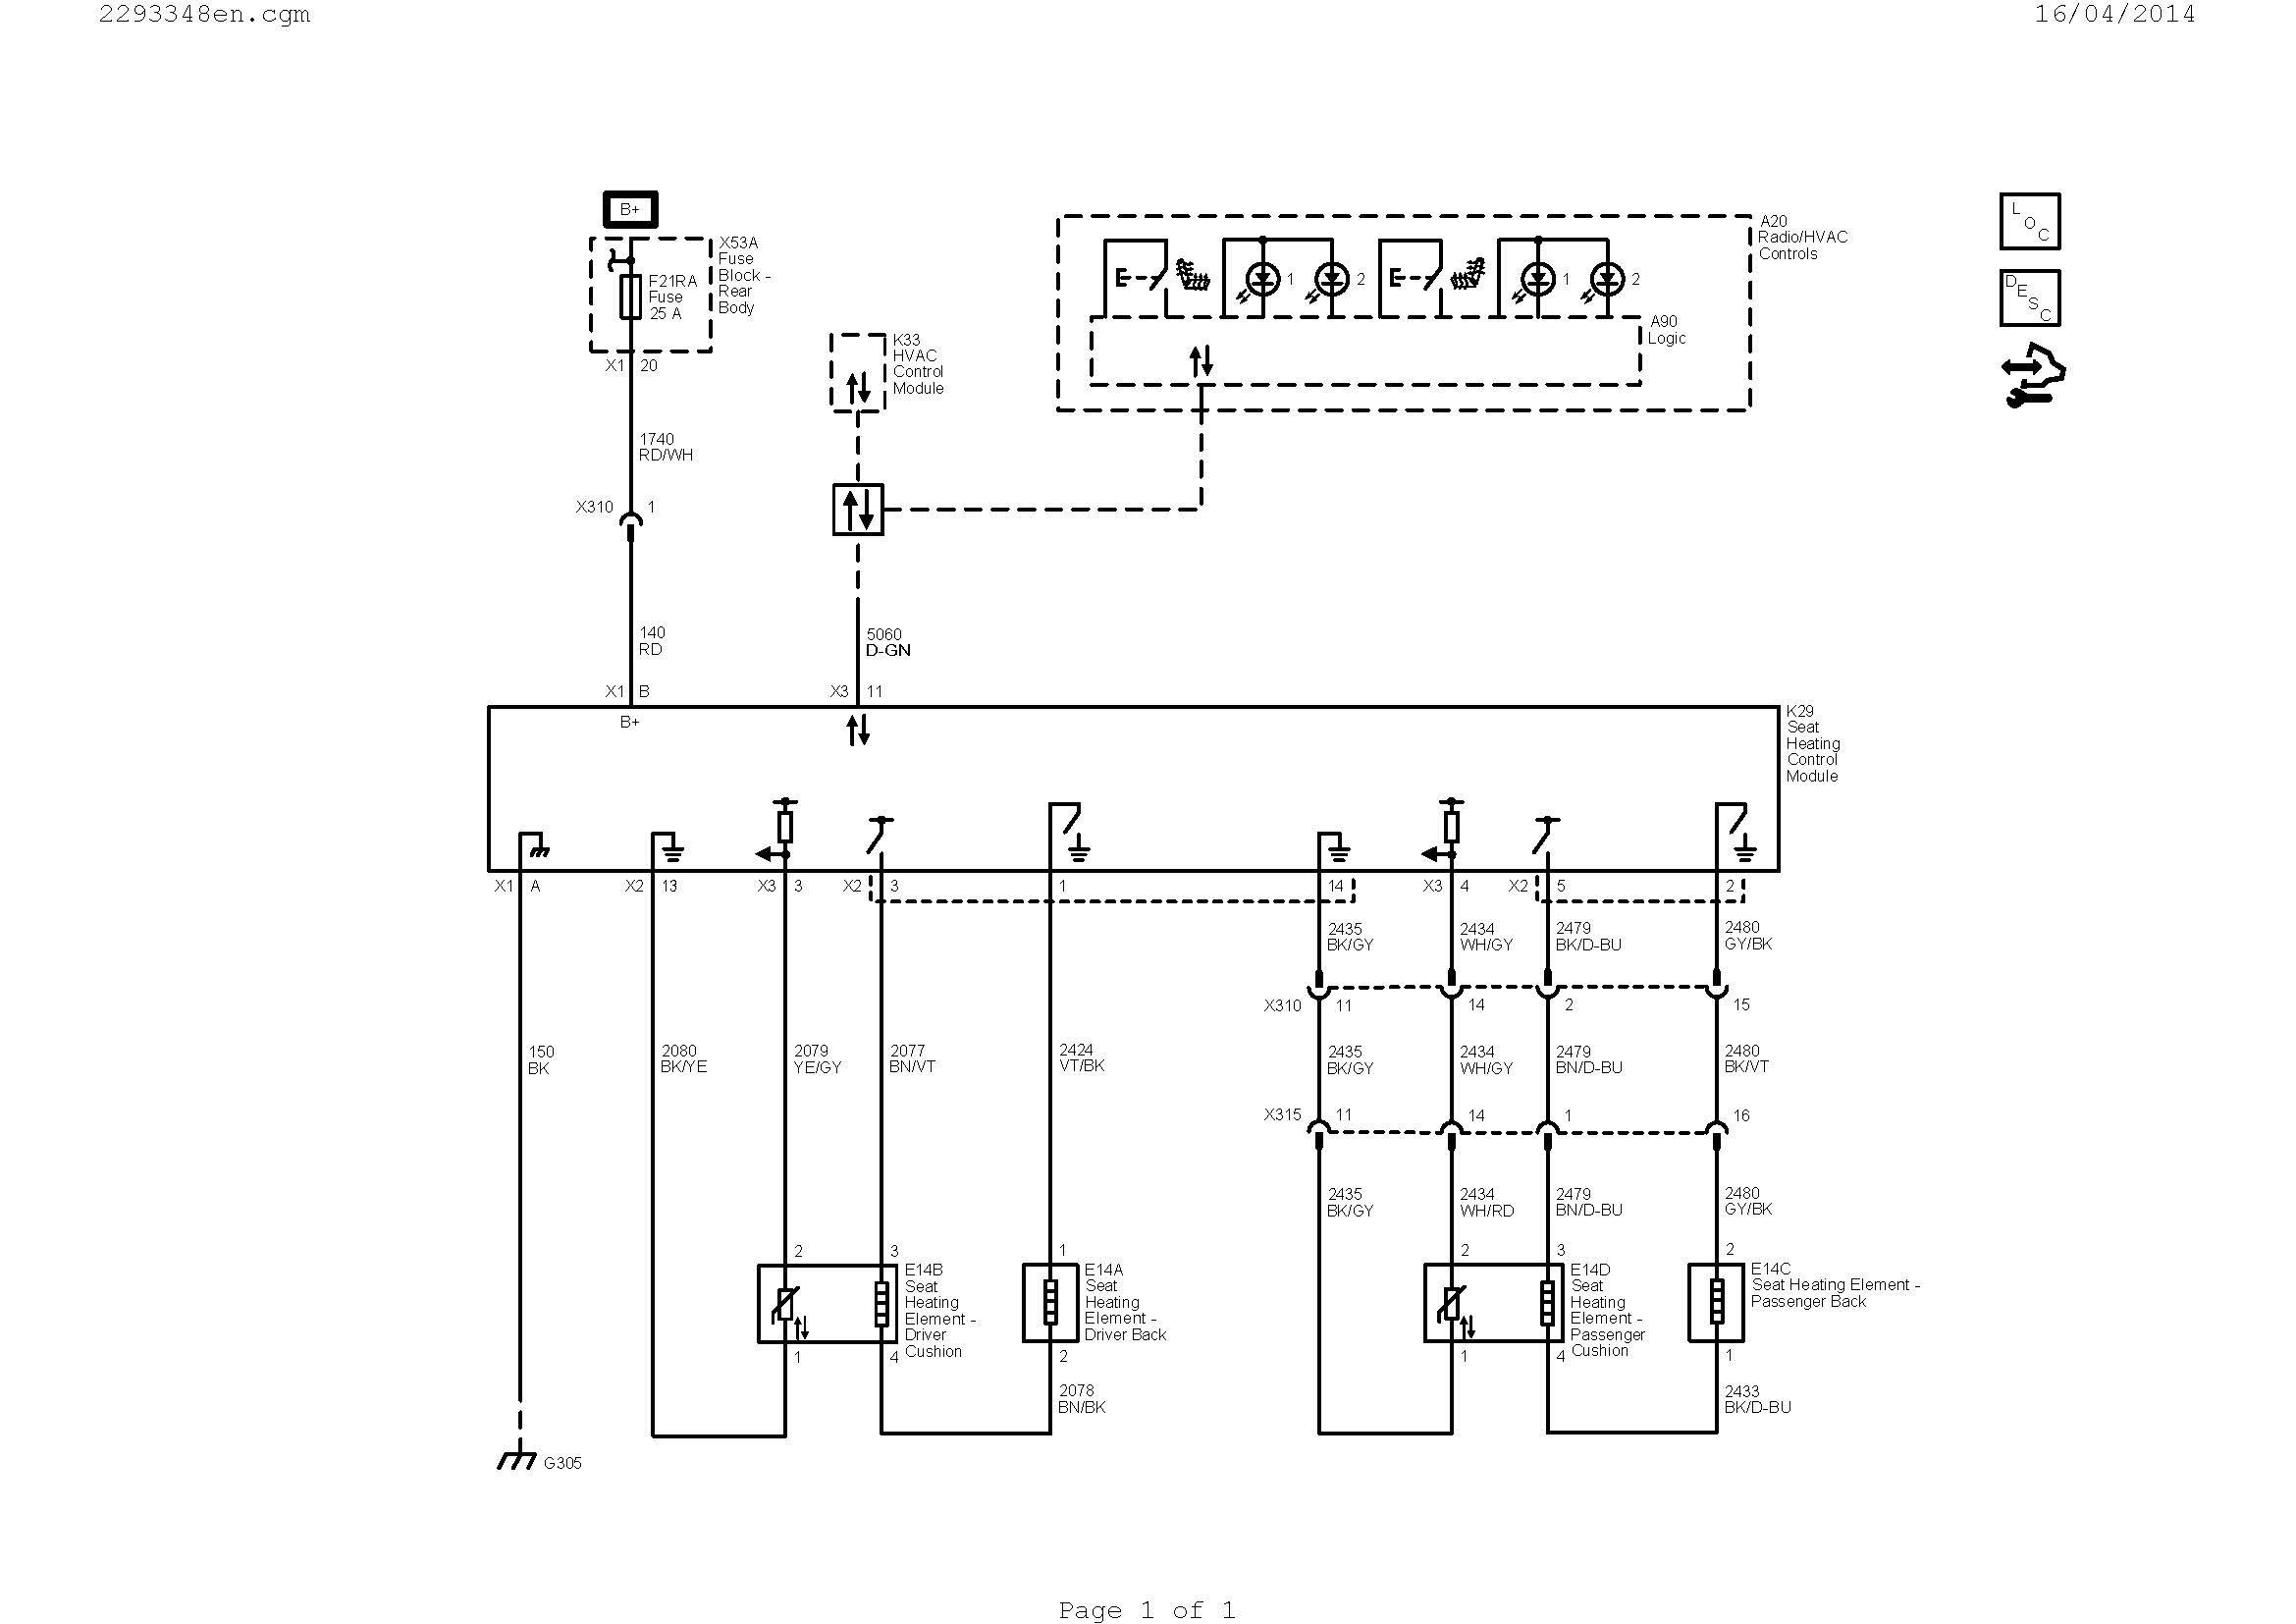 house wiring diagram examples Download-house thermostat wiring diagram Download Wiring A Ac Thermostat Diagram New Wiring Diagram Ac Valid DOWNLOAD Wiring Diagram 9-k